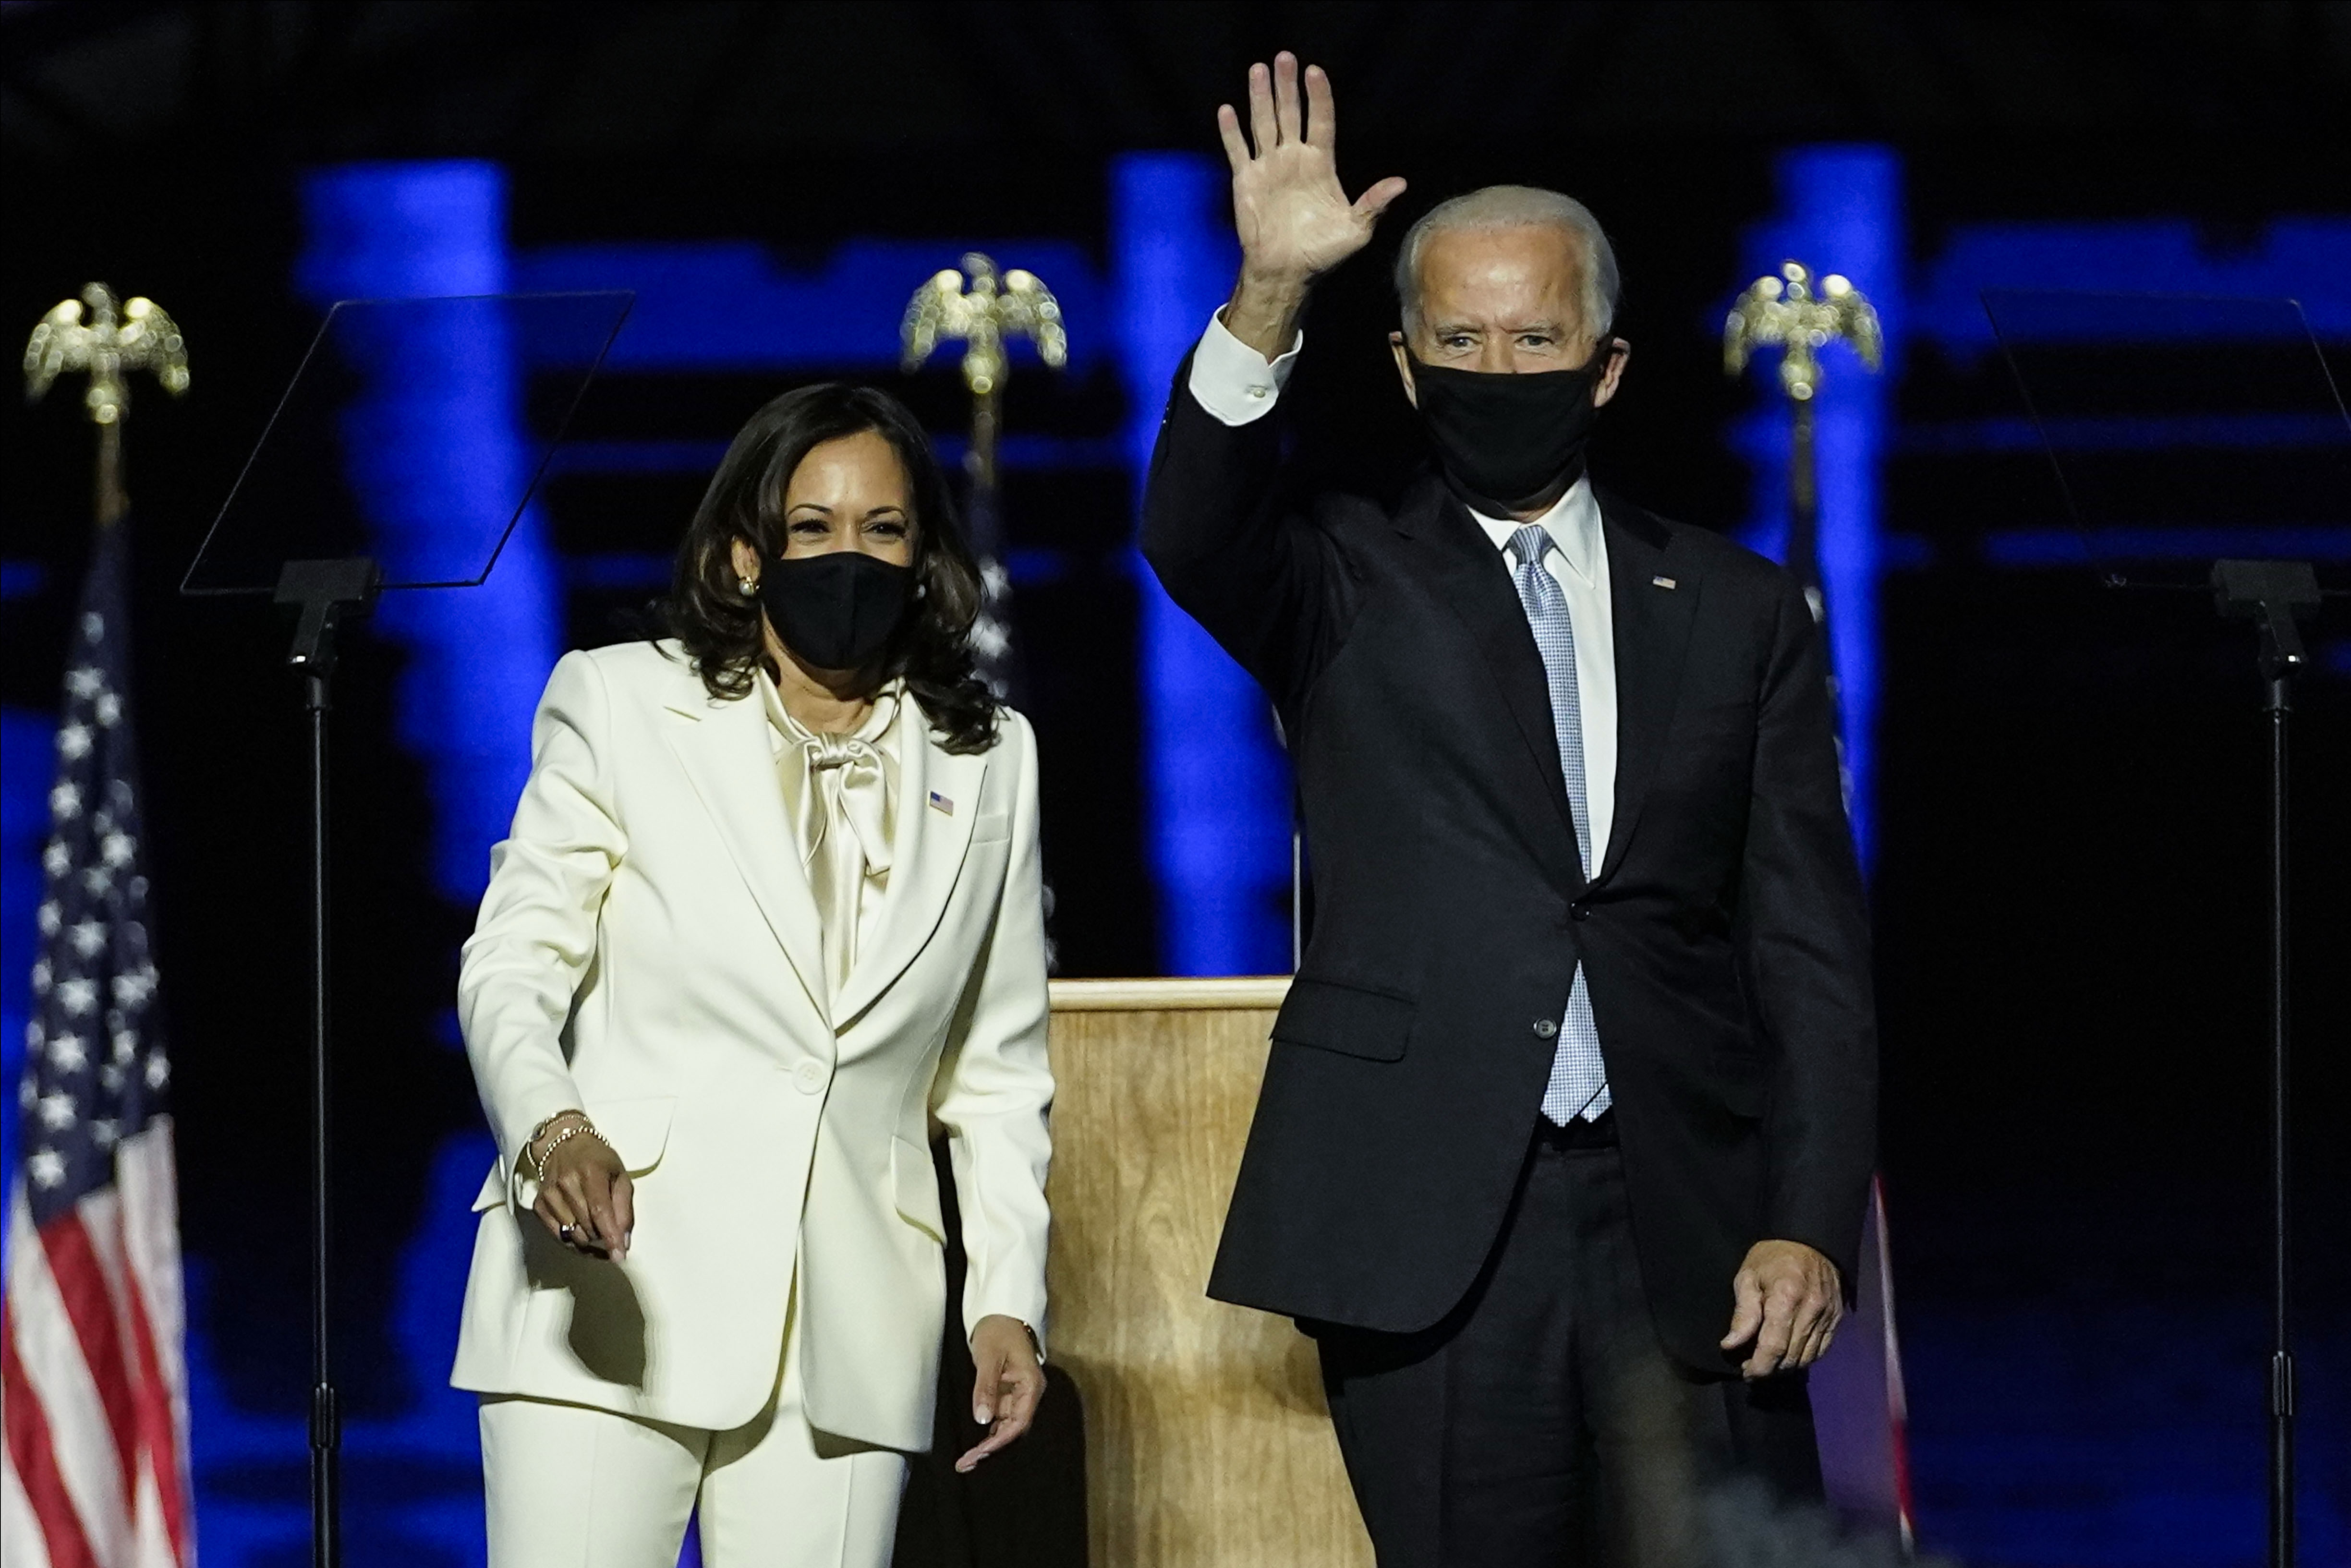 President-elect Joe Biden and Vice President-elect Kamala Harris take the stage at the Chase Center to address the nation November 7, 2020, in Wilmington, Delaware.